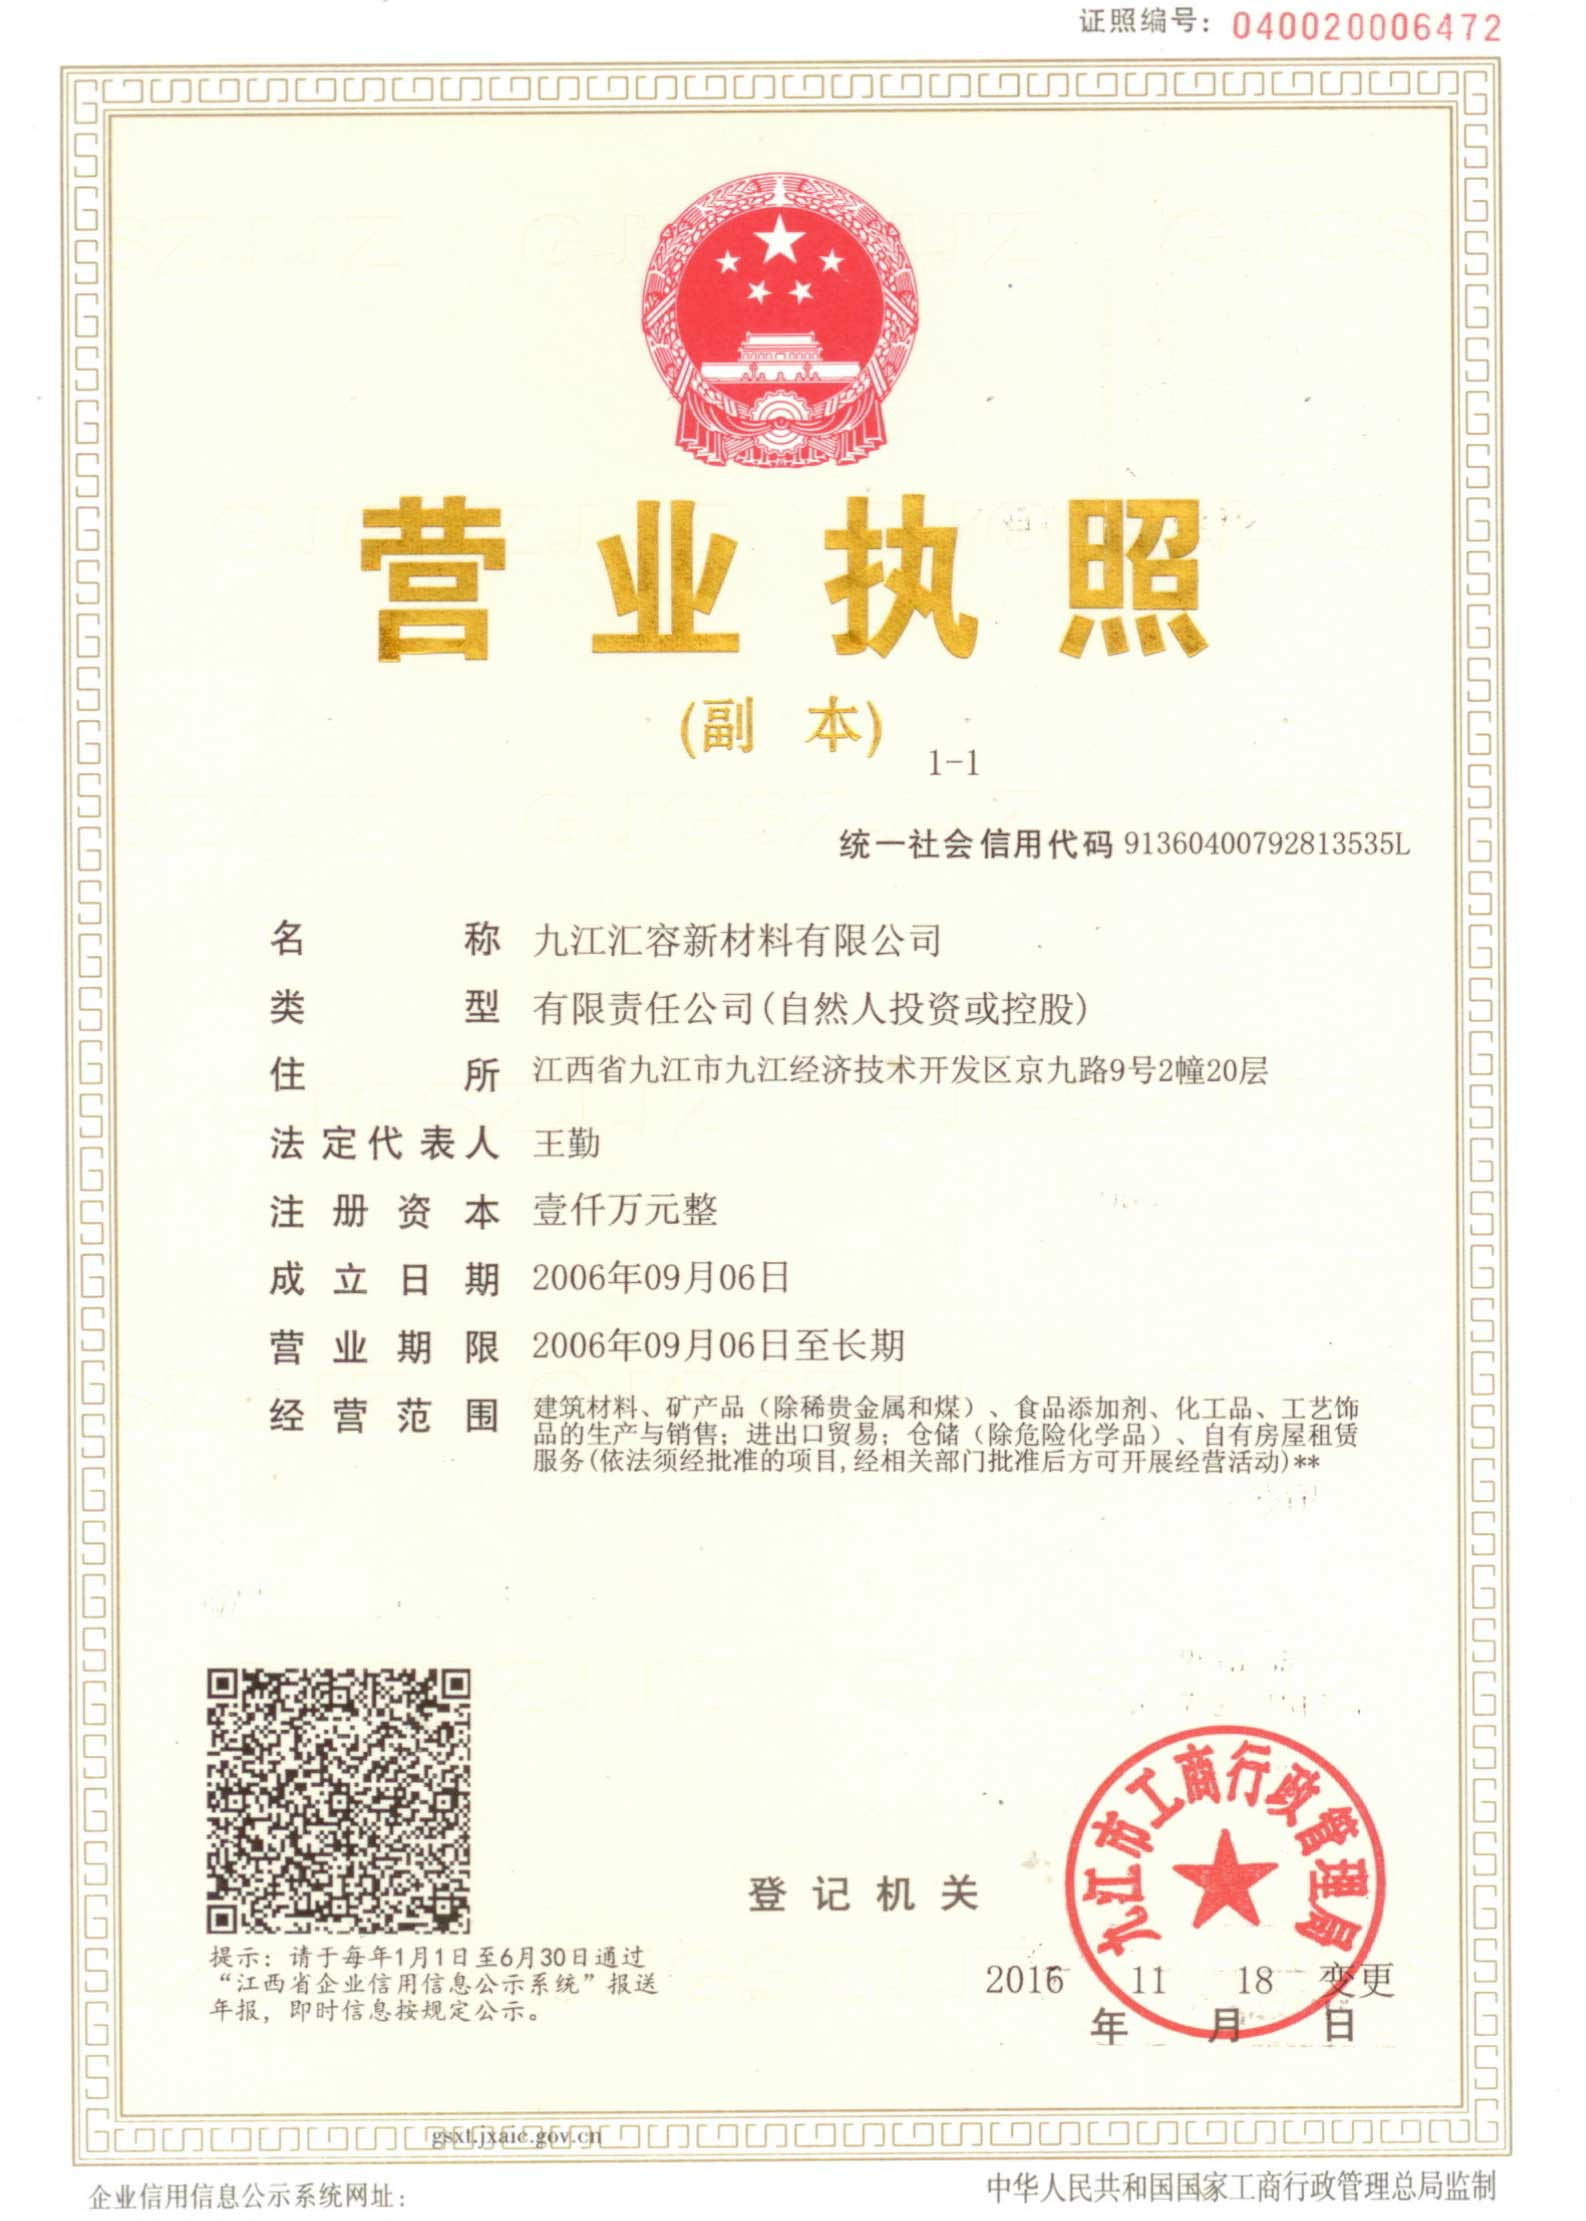 qualification-certificate-3